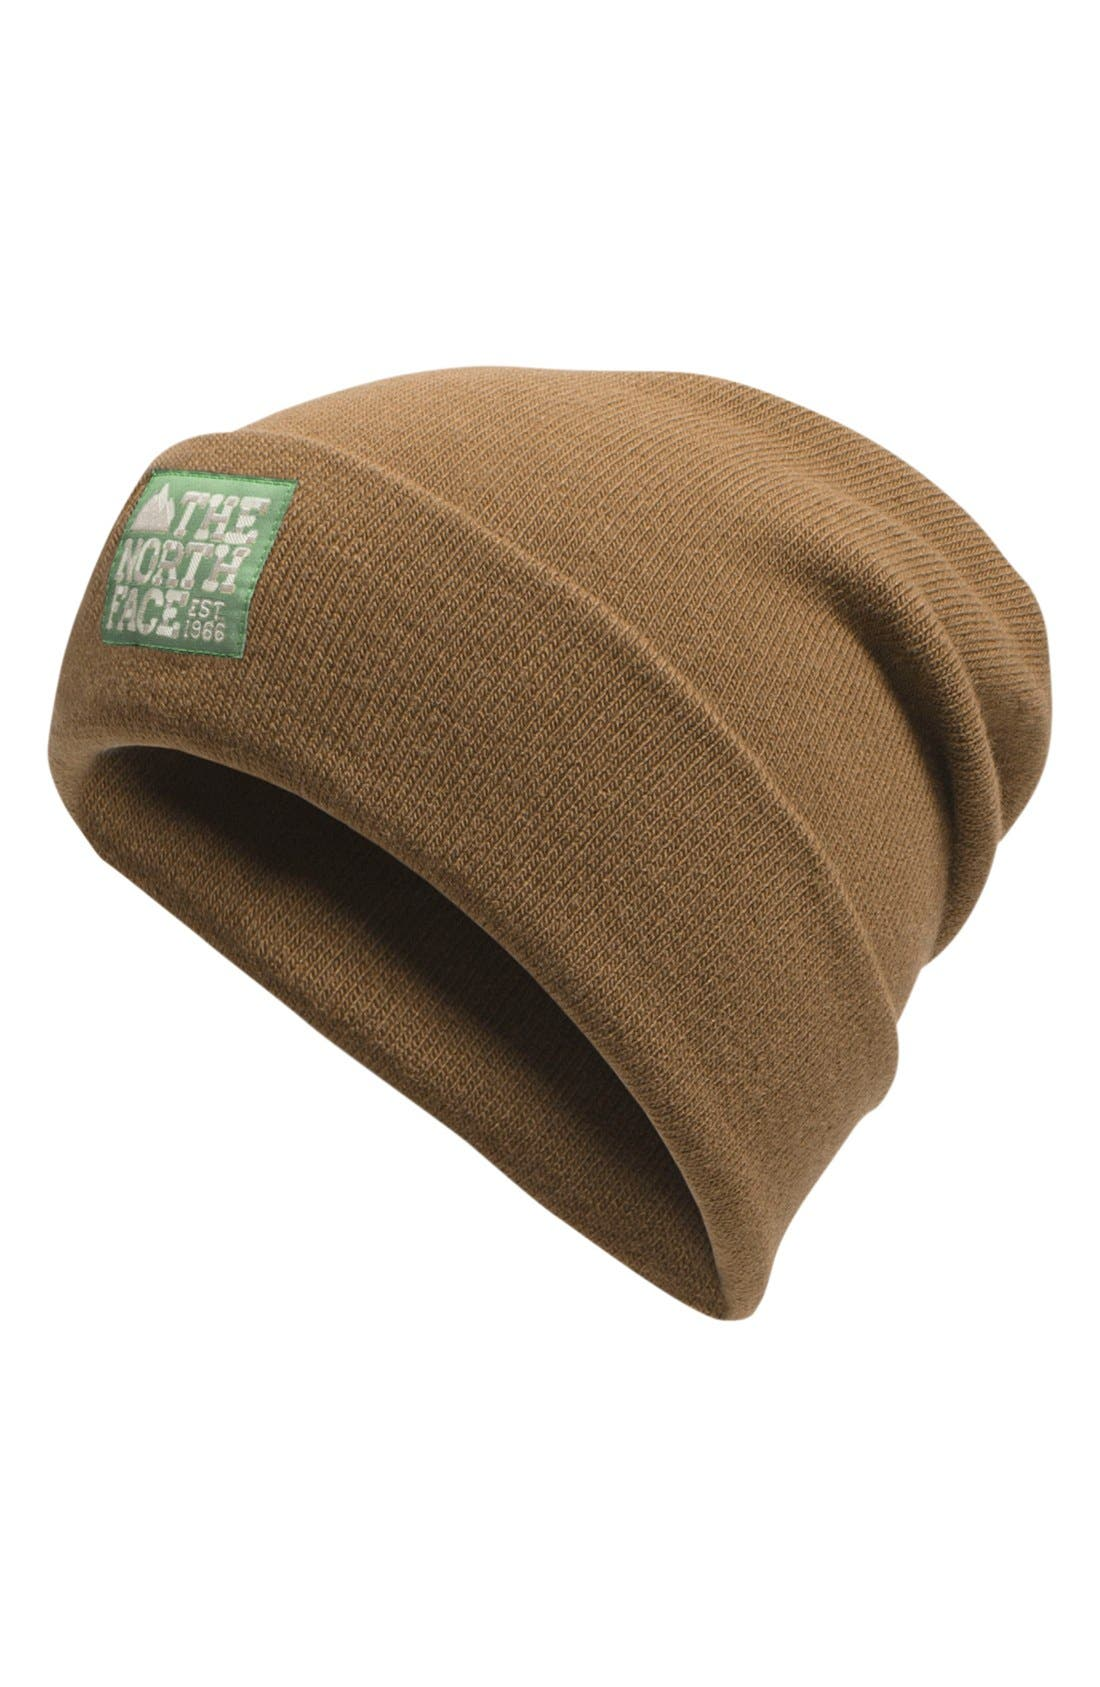 Alternate Image 1 Selected - The North Face 'Dock Worker' Beanie